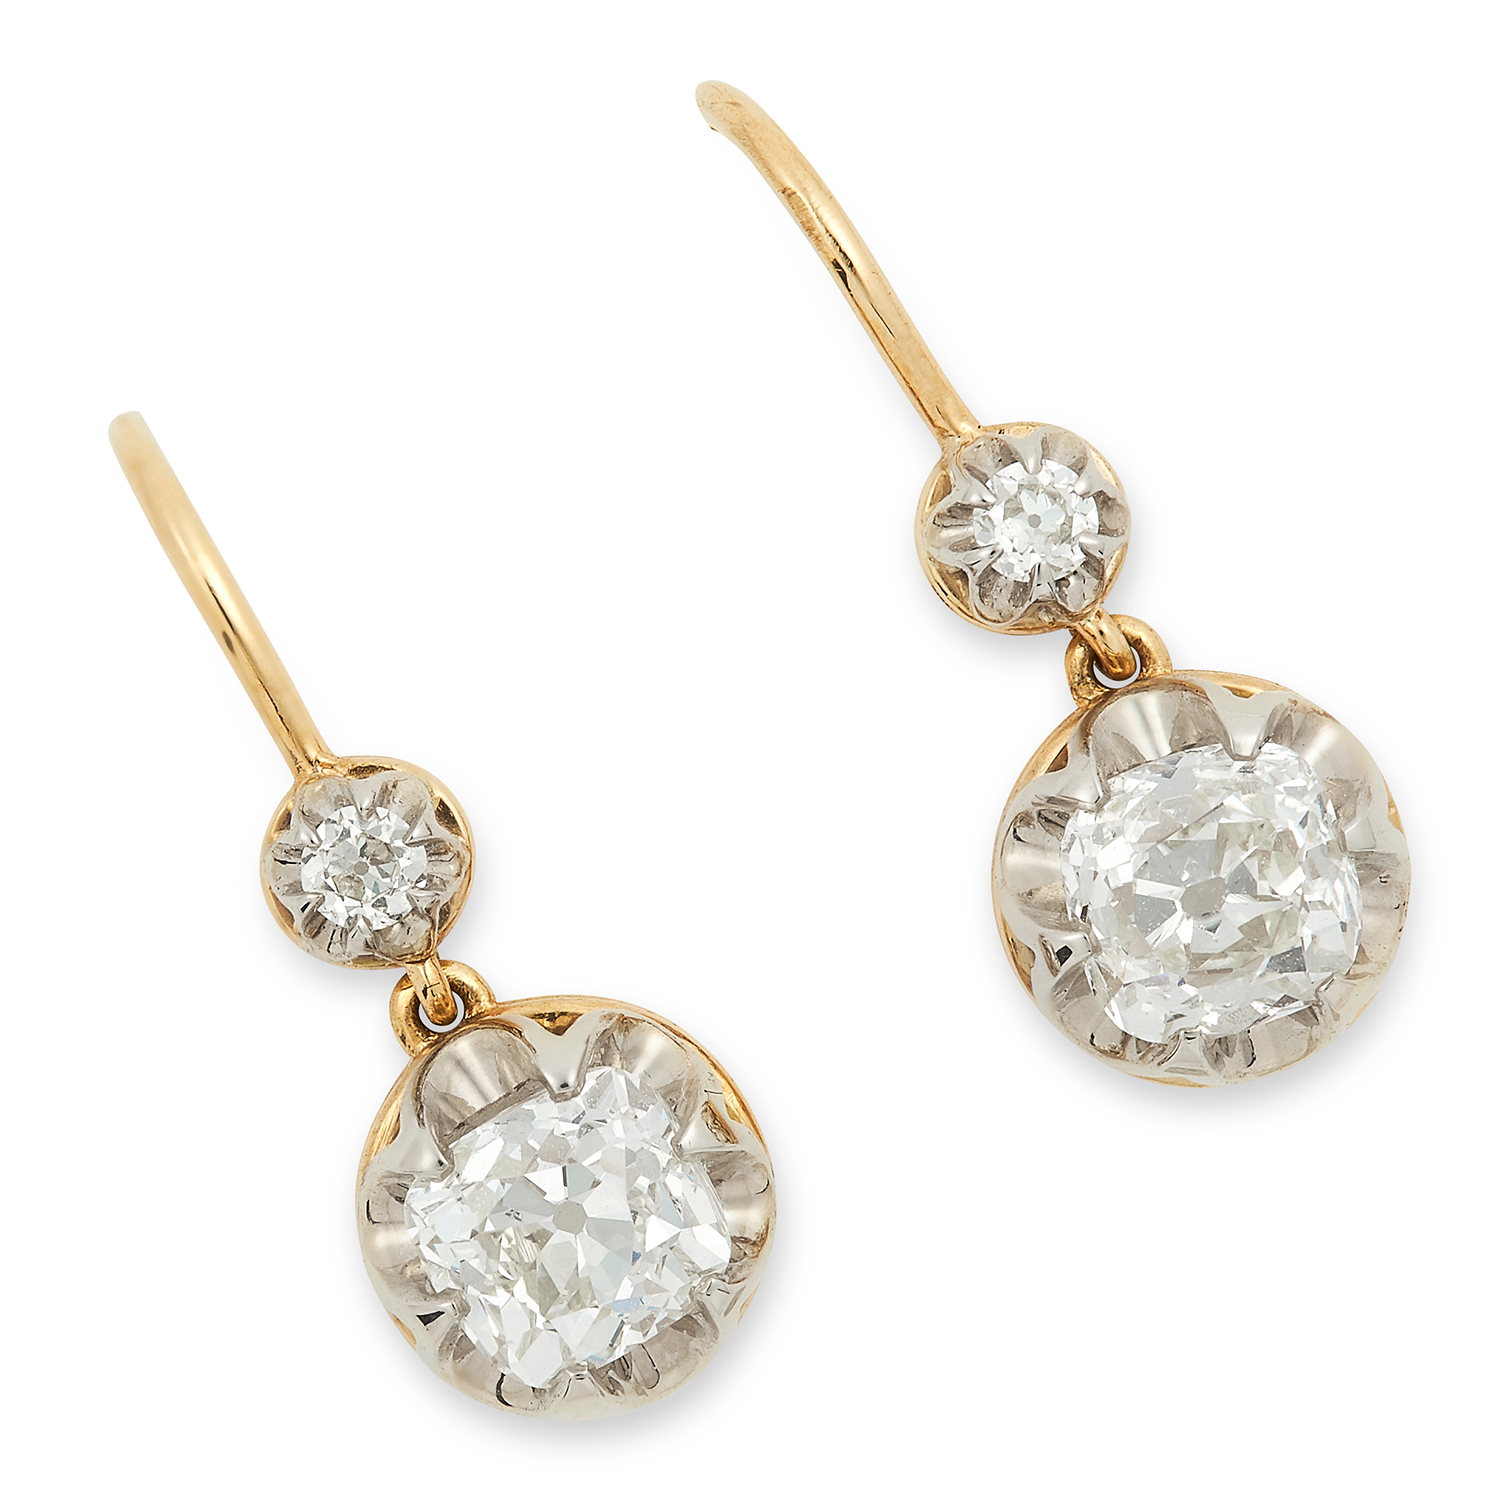 2.06 CARAT DIAMOND DROP EARRINGS each set with two old cut diamonds totalling approximately 2.06